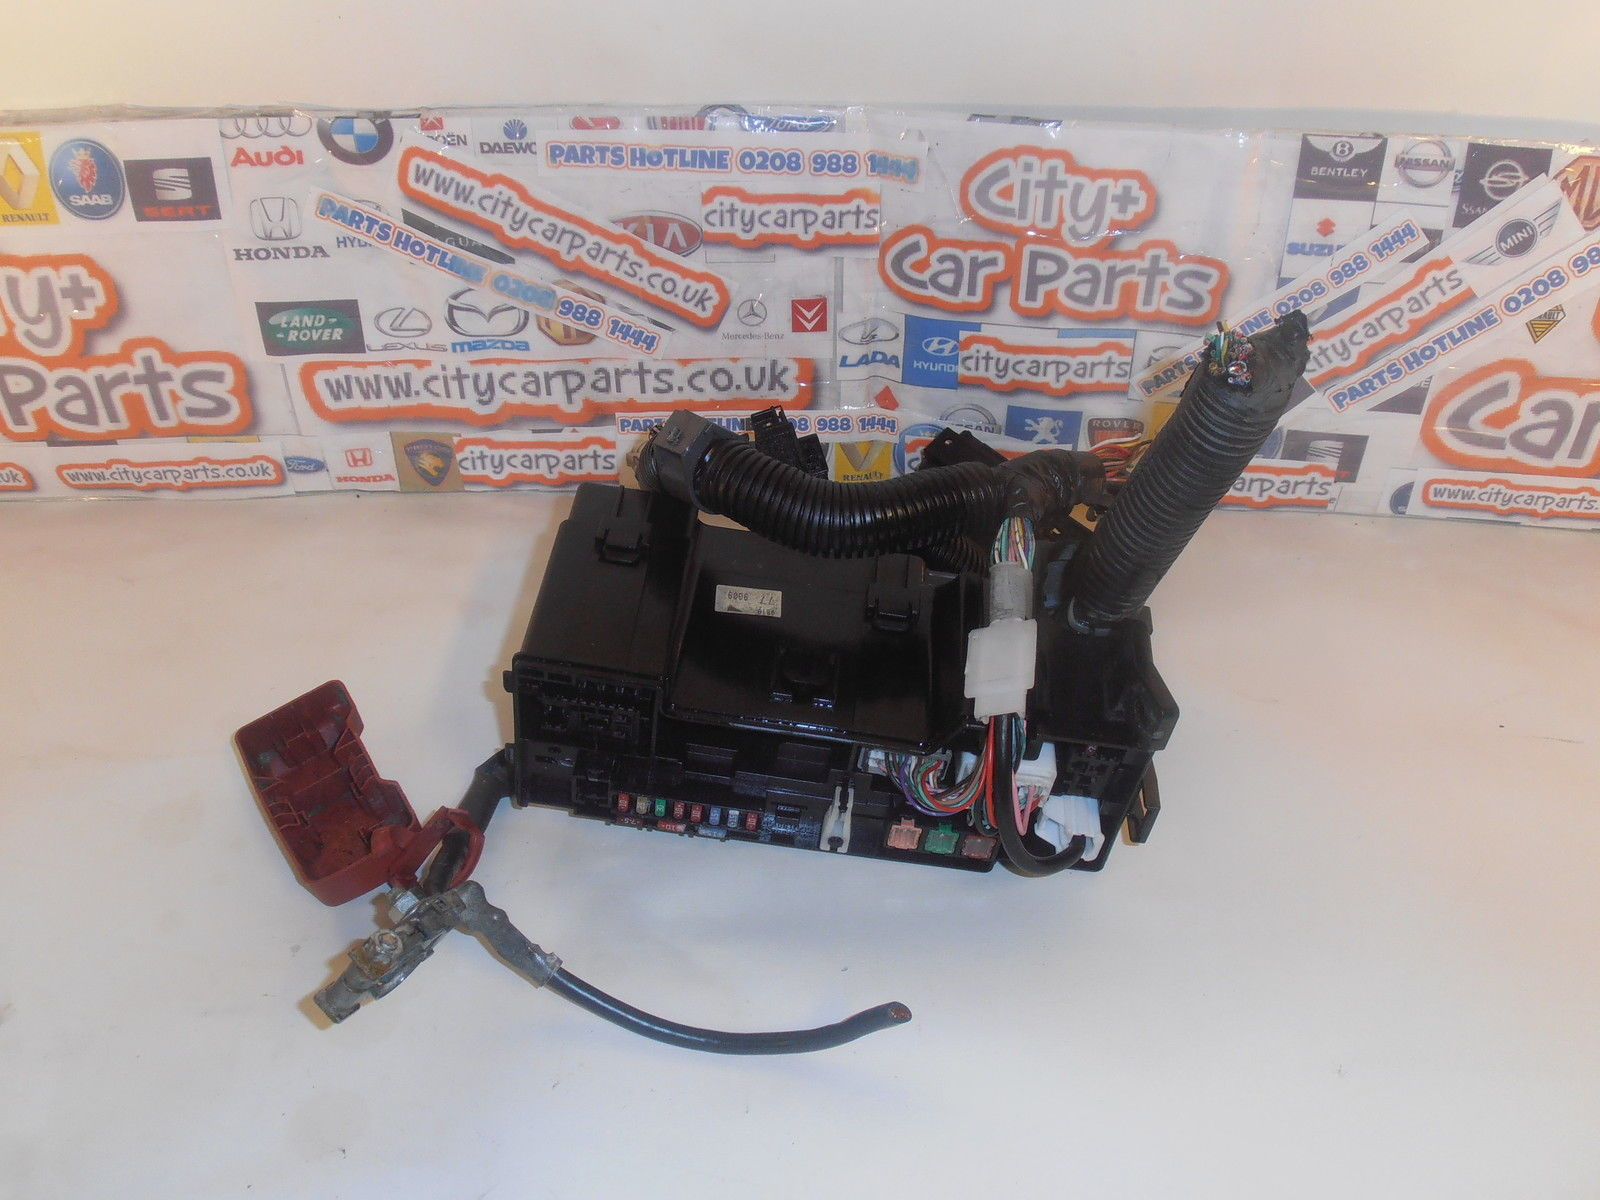 CITROEN C1 TOYOTA AYGO PEUGEOT 107 MODELS FROM 2005 TO 2014 ENGINE BAY FUSE  BOX